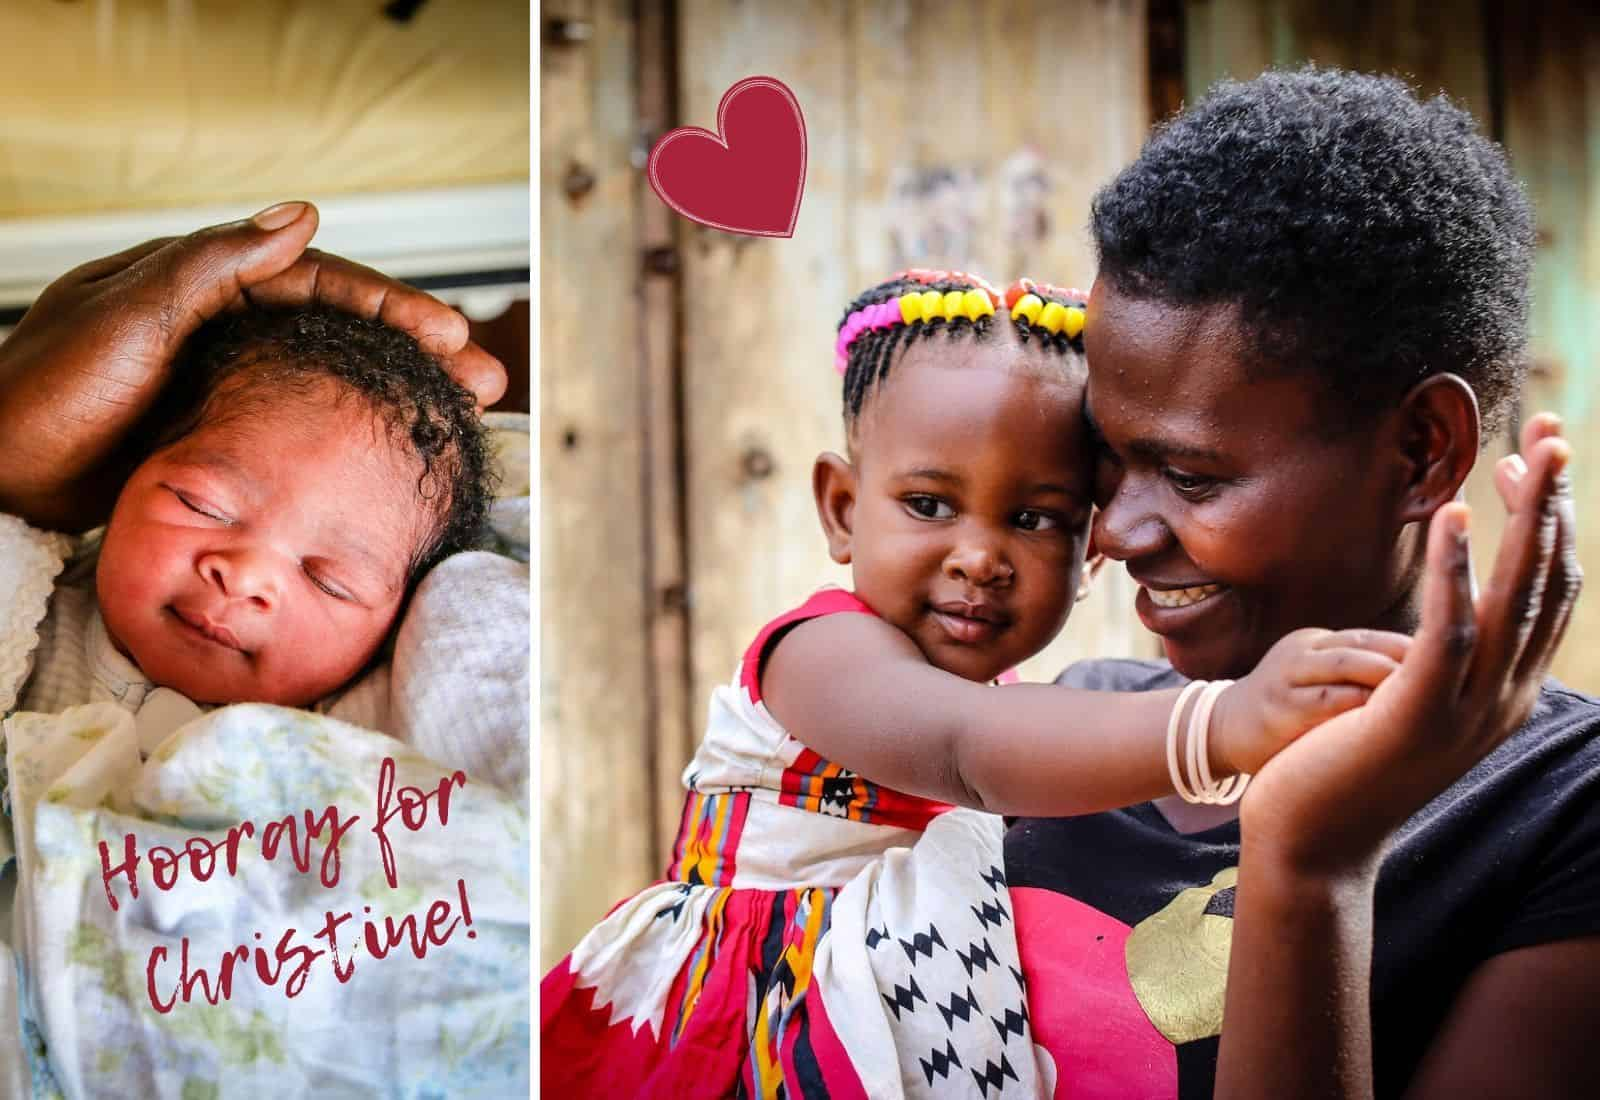 Two photo, one on the left of a newborn baby. Text reads: Hooray for Christine! On the right is a woman in a black shirt holding a girl in a red and white dress, smiling at her, celebrating her birthday milestone.